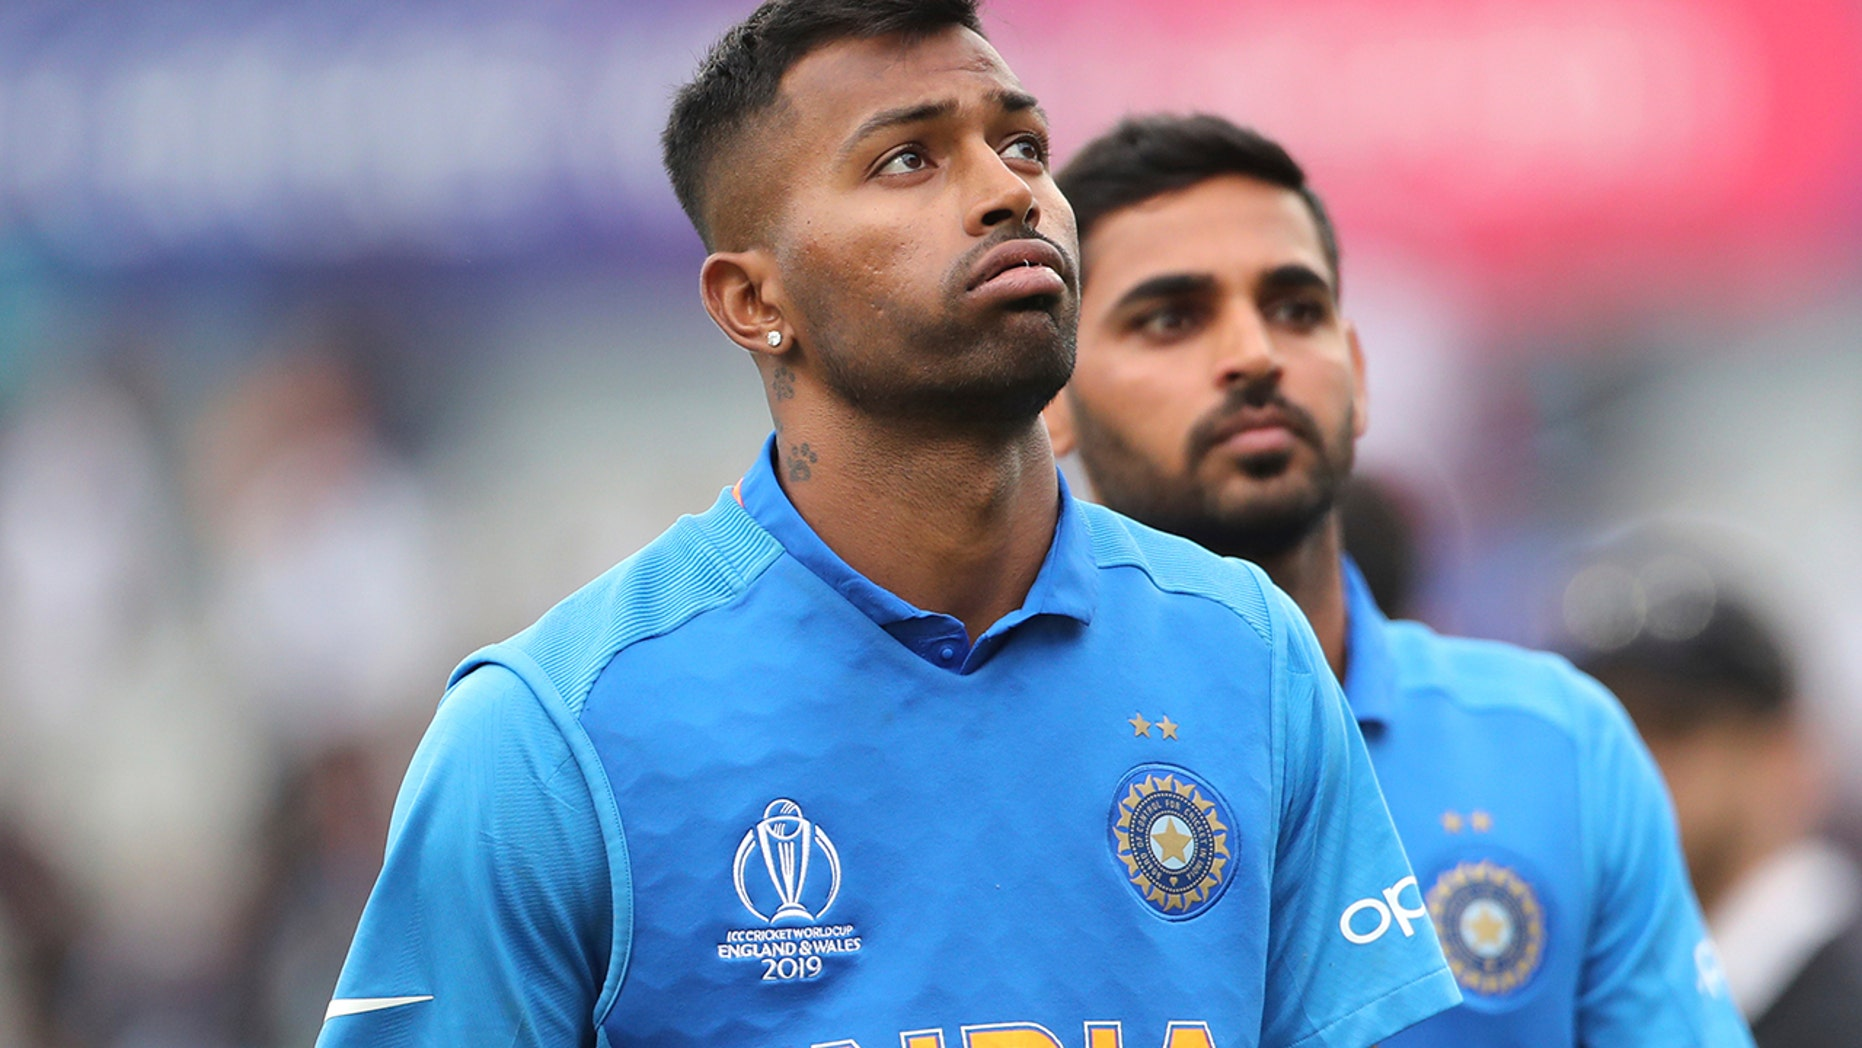 India's Hardik Pandya, left, reacts after their loss in the Cricket World Cup semi-final match against New Zealand at Old Trafford in Manchester, England, Wednesday, July 10, 2019. (AP Photo/Aijaz Rahi)